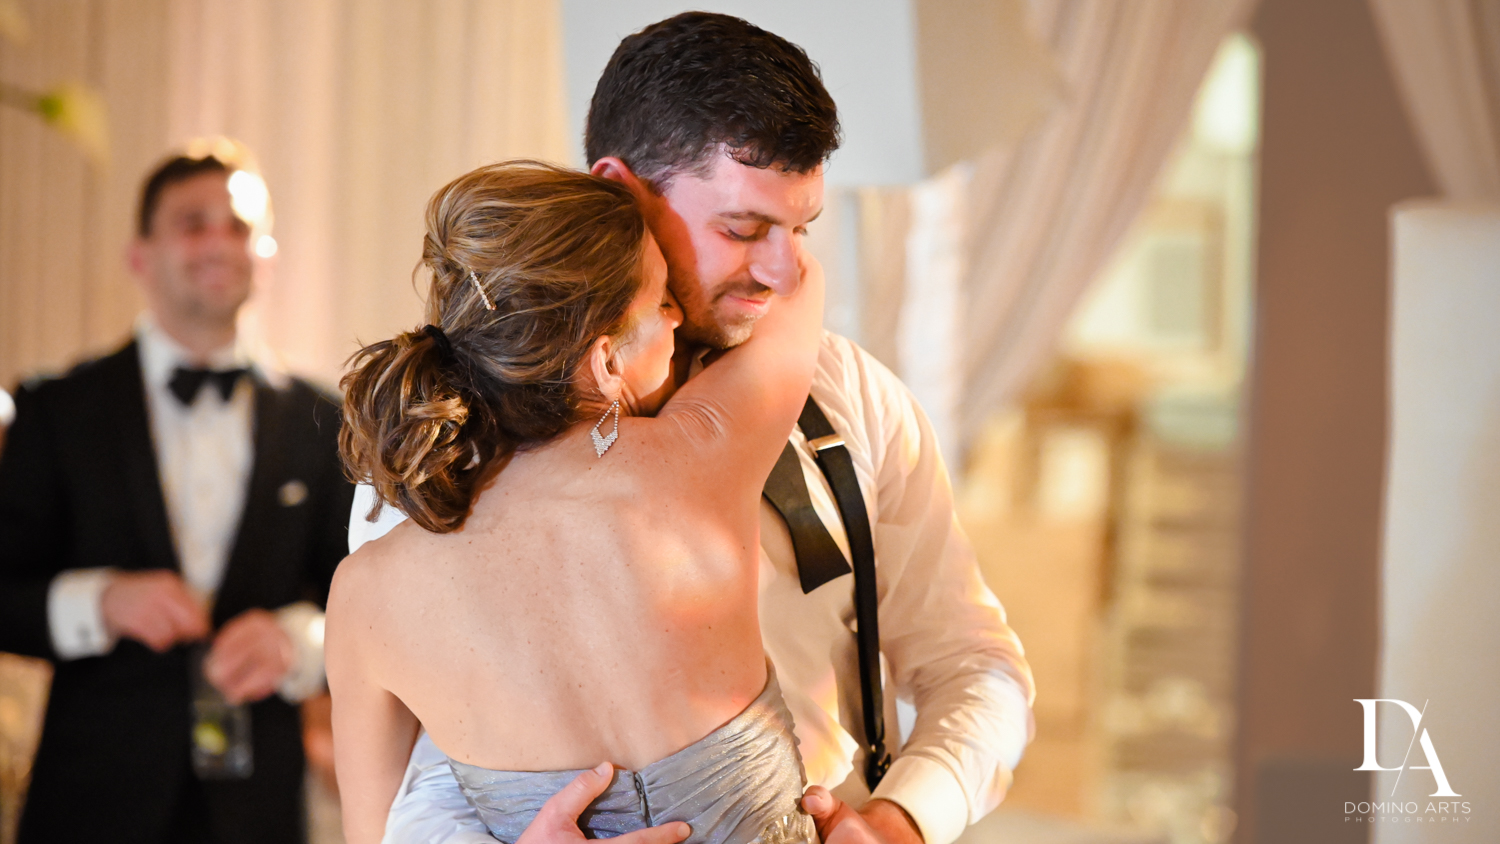 mom dance at Wedding at Boca Rio Golf Club by Domino Arts Photography